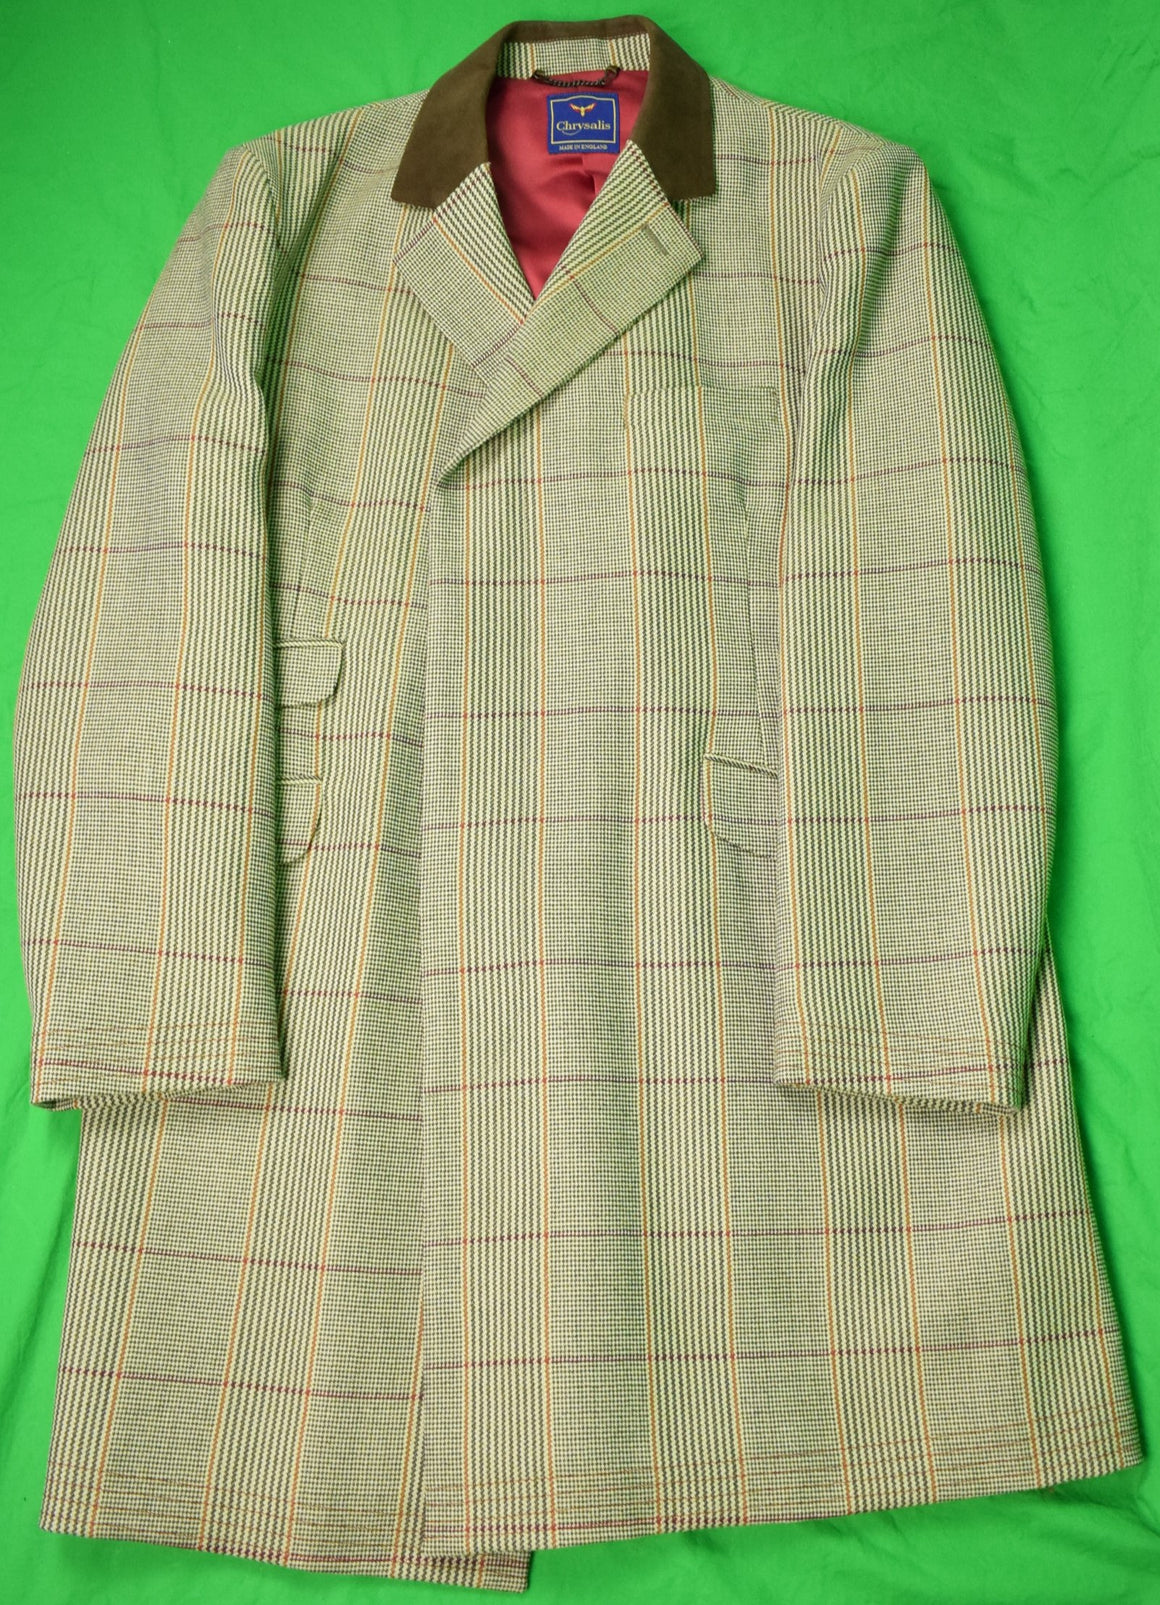 Chrysalis Russell Plaid Paddock Coat for The Andover Shop w Hacking/ Ticket Pockets & Chocolate Suede Collar Sz: 46